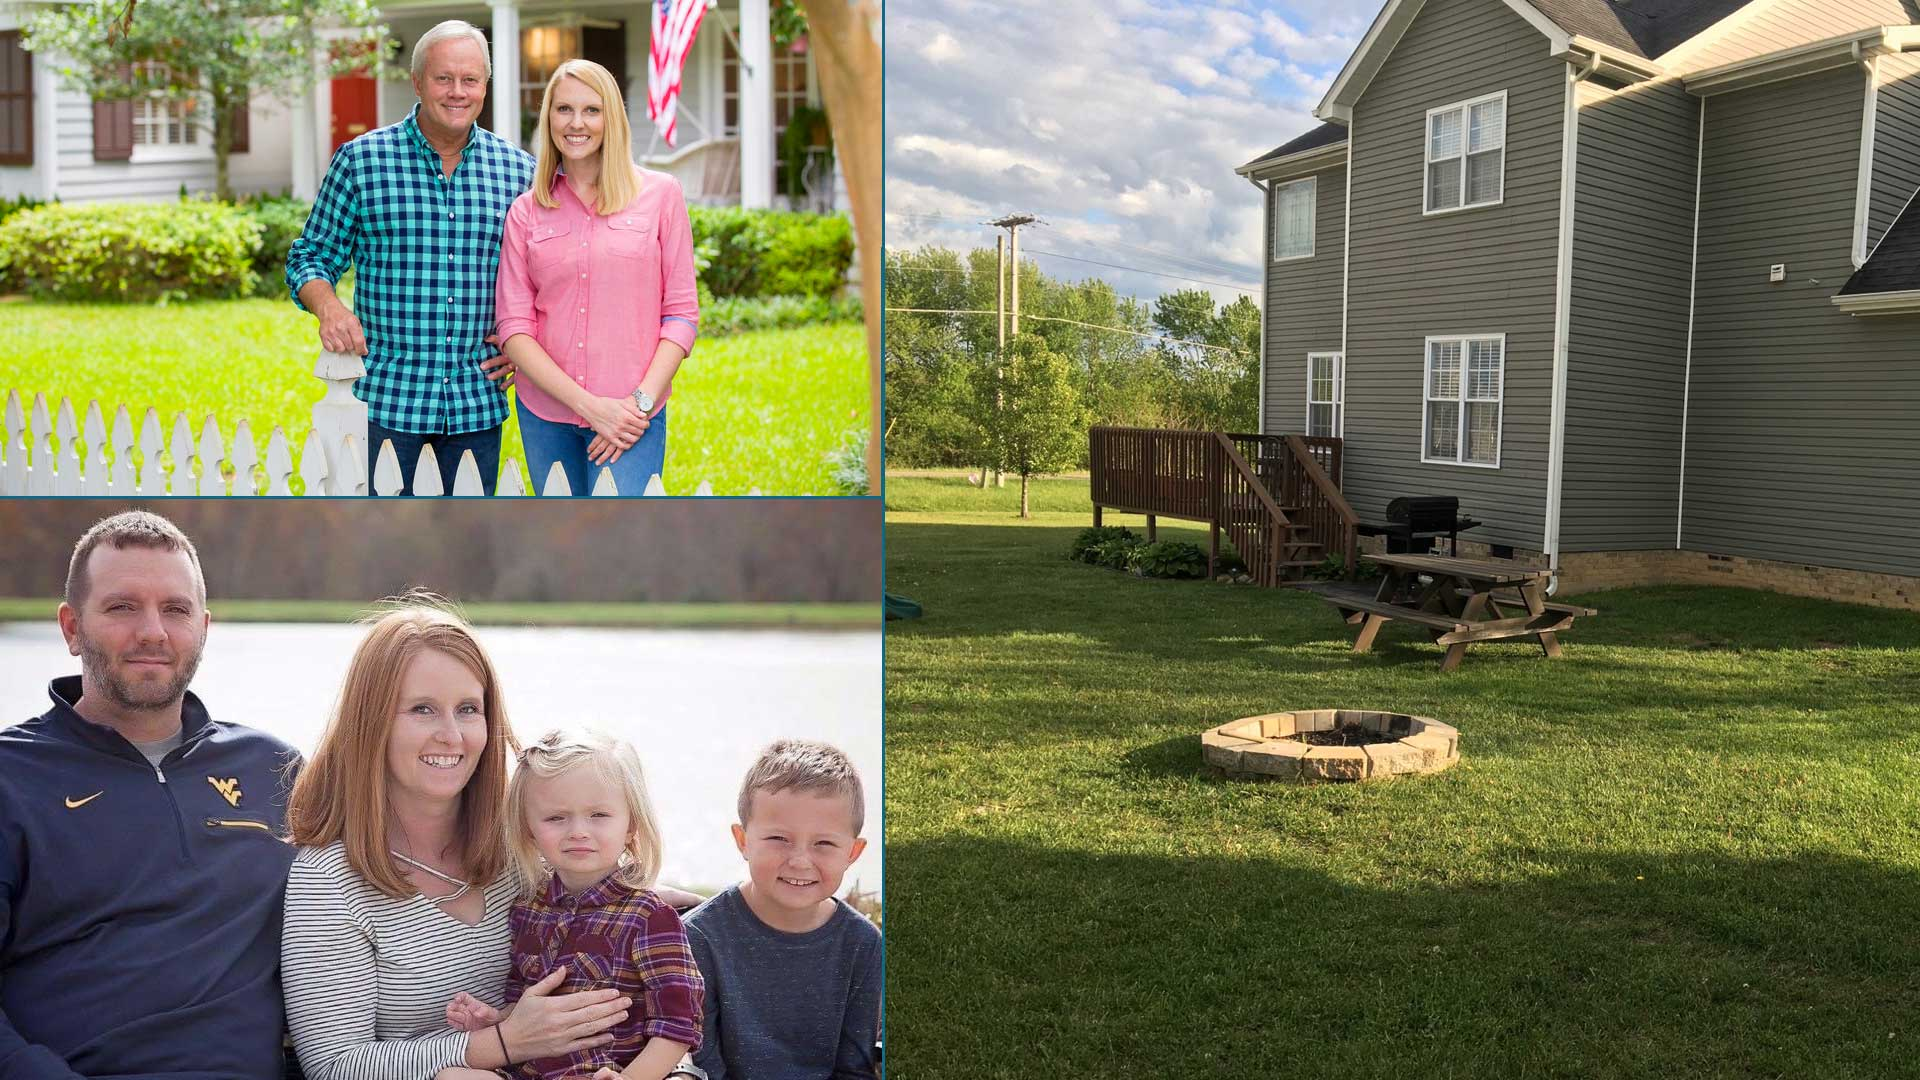 Donna Petry, with her West Virginia family, and Danny Lipford and Chelsea Lipford Wolf, hosts of Today's Homeowner